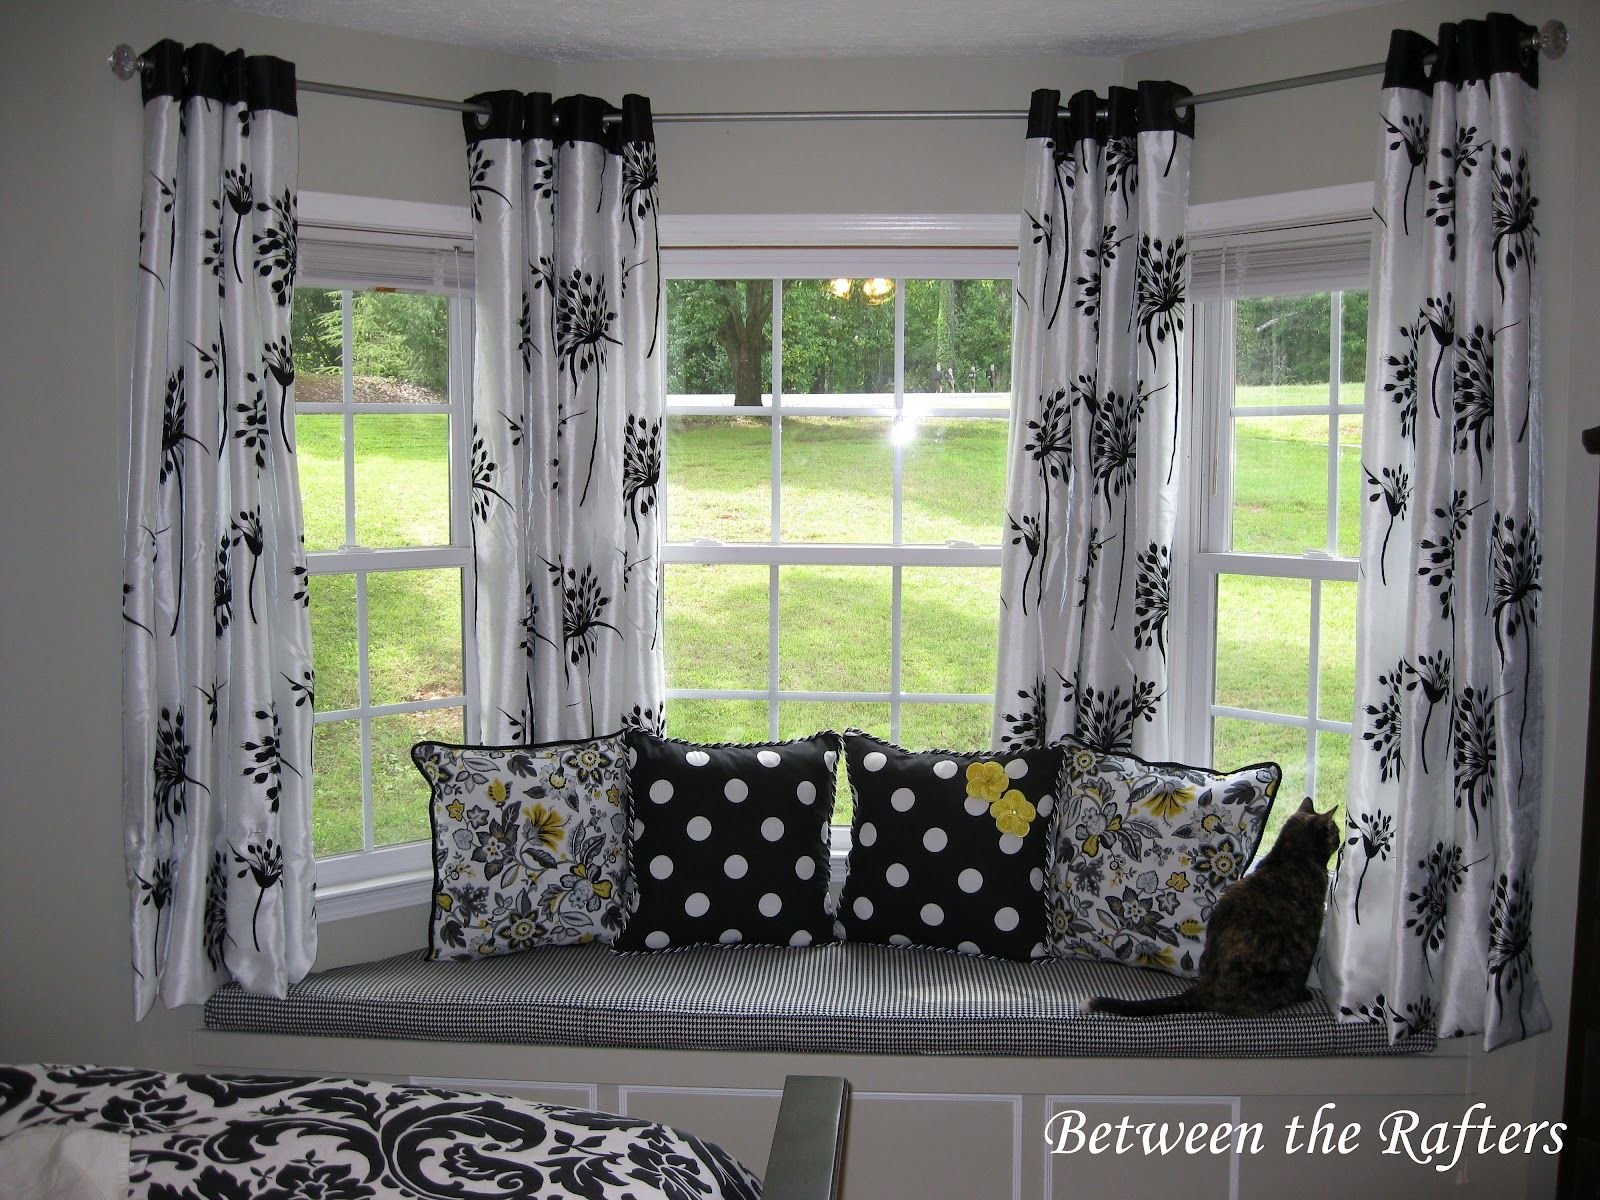 Window treatments for box bay windows - Between The Rafters Do It Yourself Bay Window Curtain Rod Tutorial